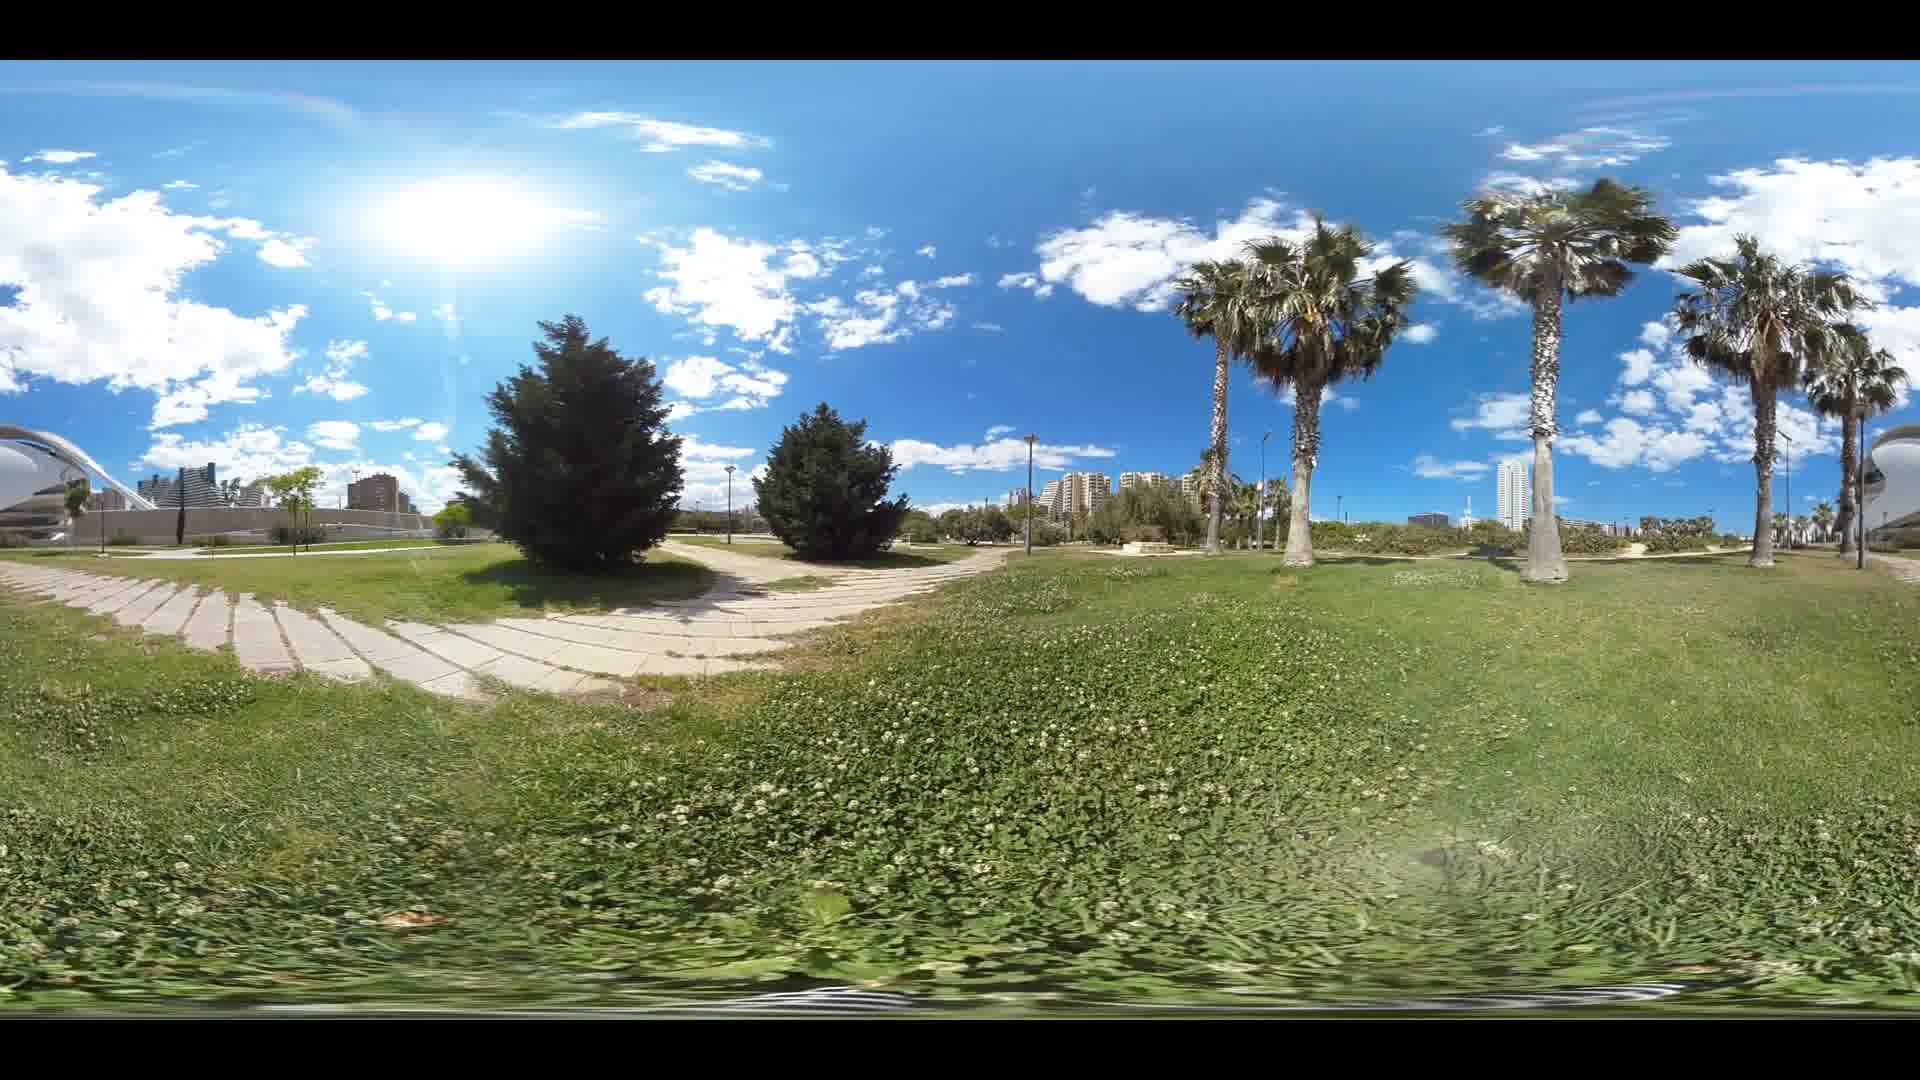 Virtual Reality 360 view from Turia gardens and the Berklee College of Music in Valencia Spain